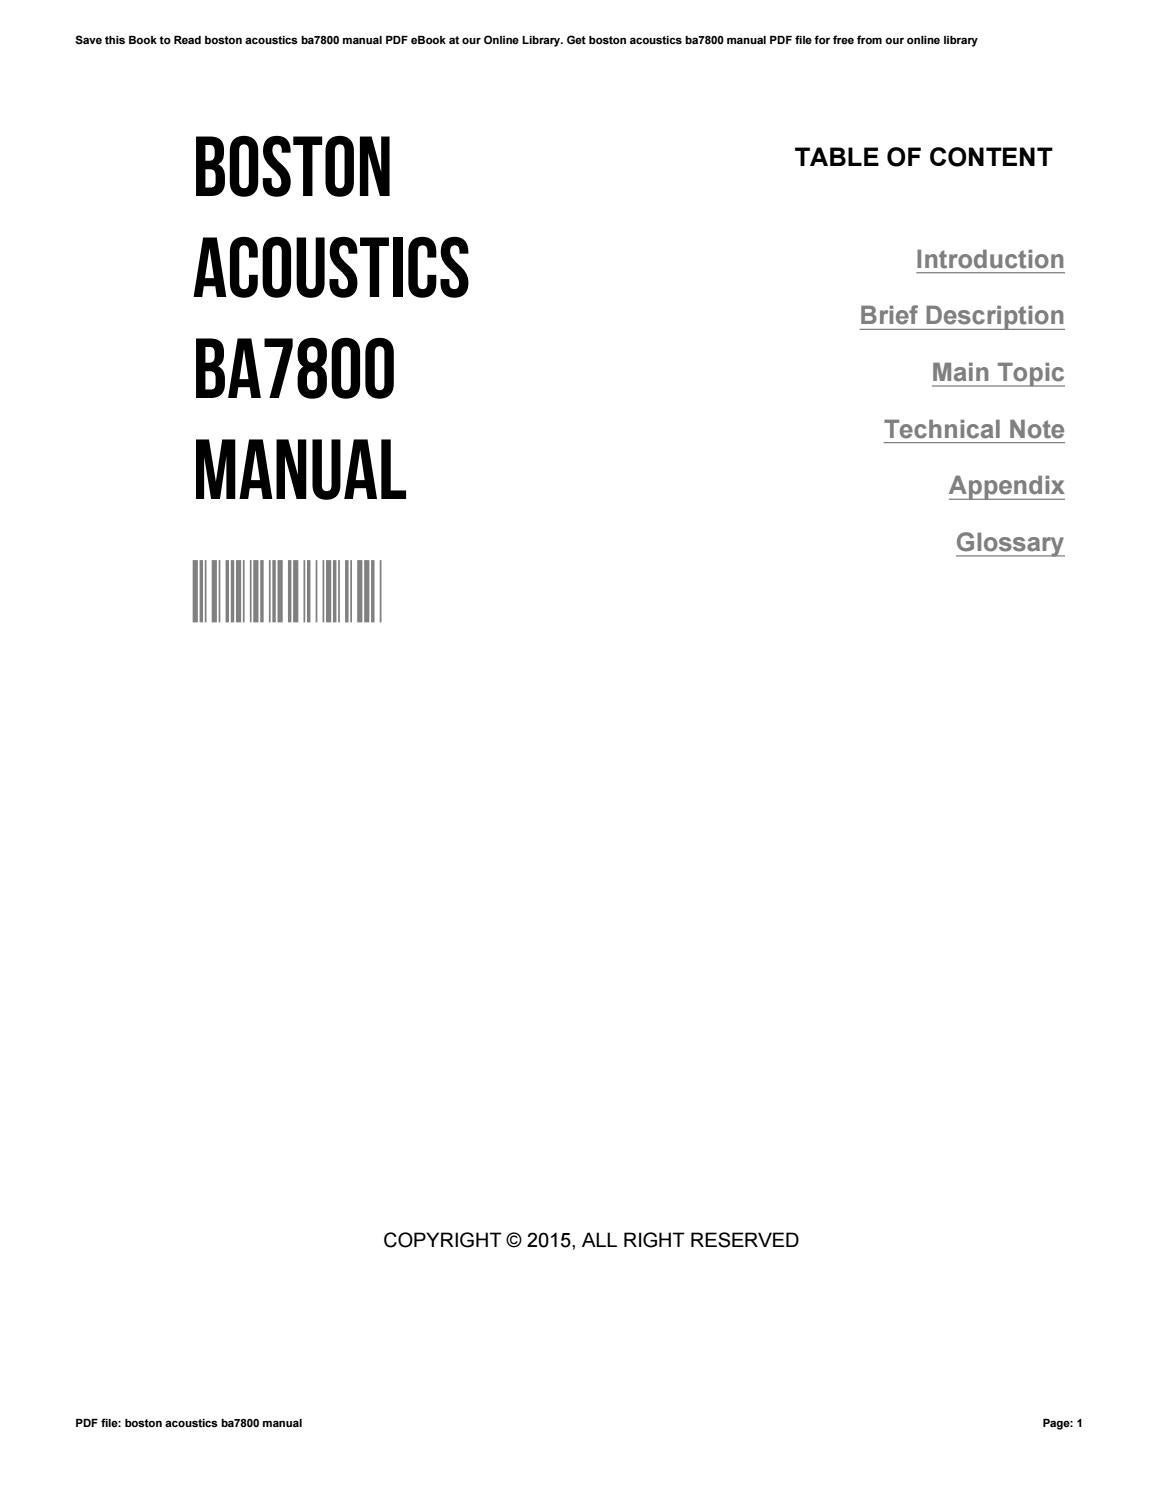 Boston Acoustics Ba7800 Manual By Roberthall4052